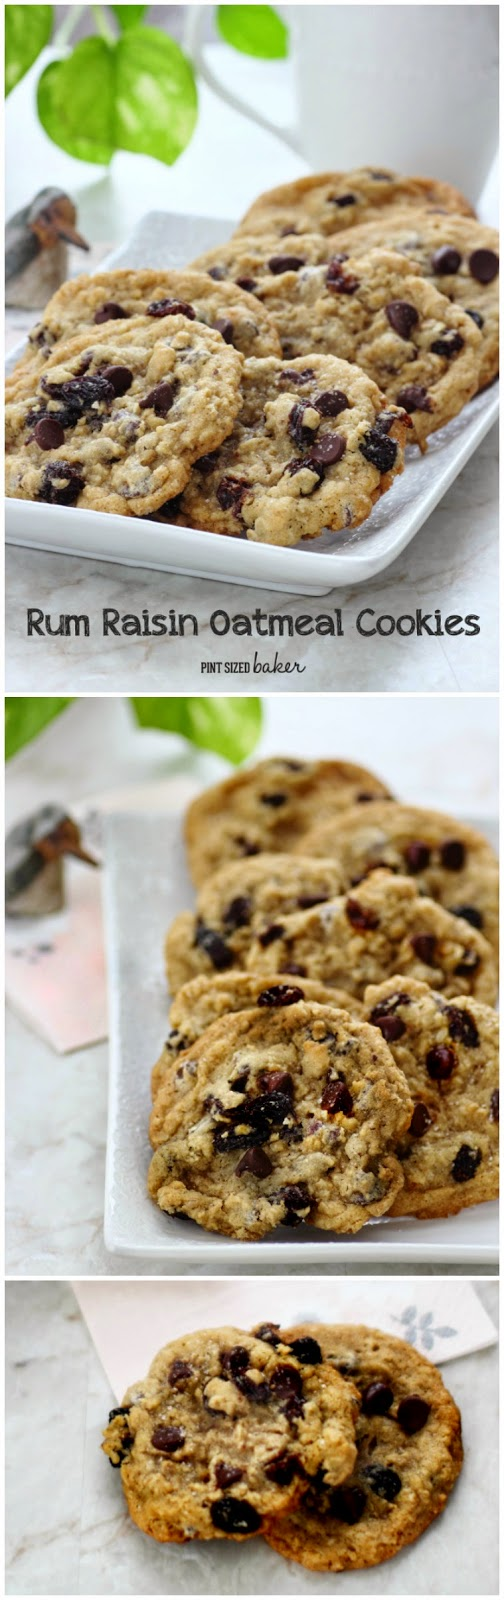 Run Raisin Oatmeal Chocolate Chip Cookies are perfect for my girls night in!